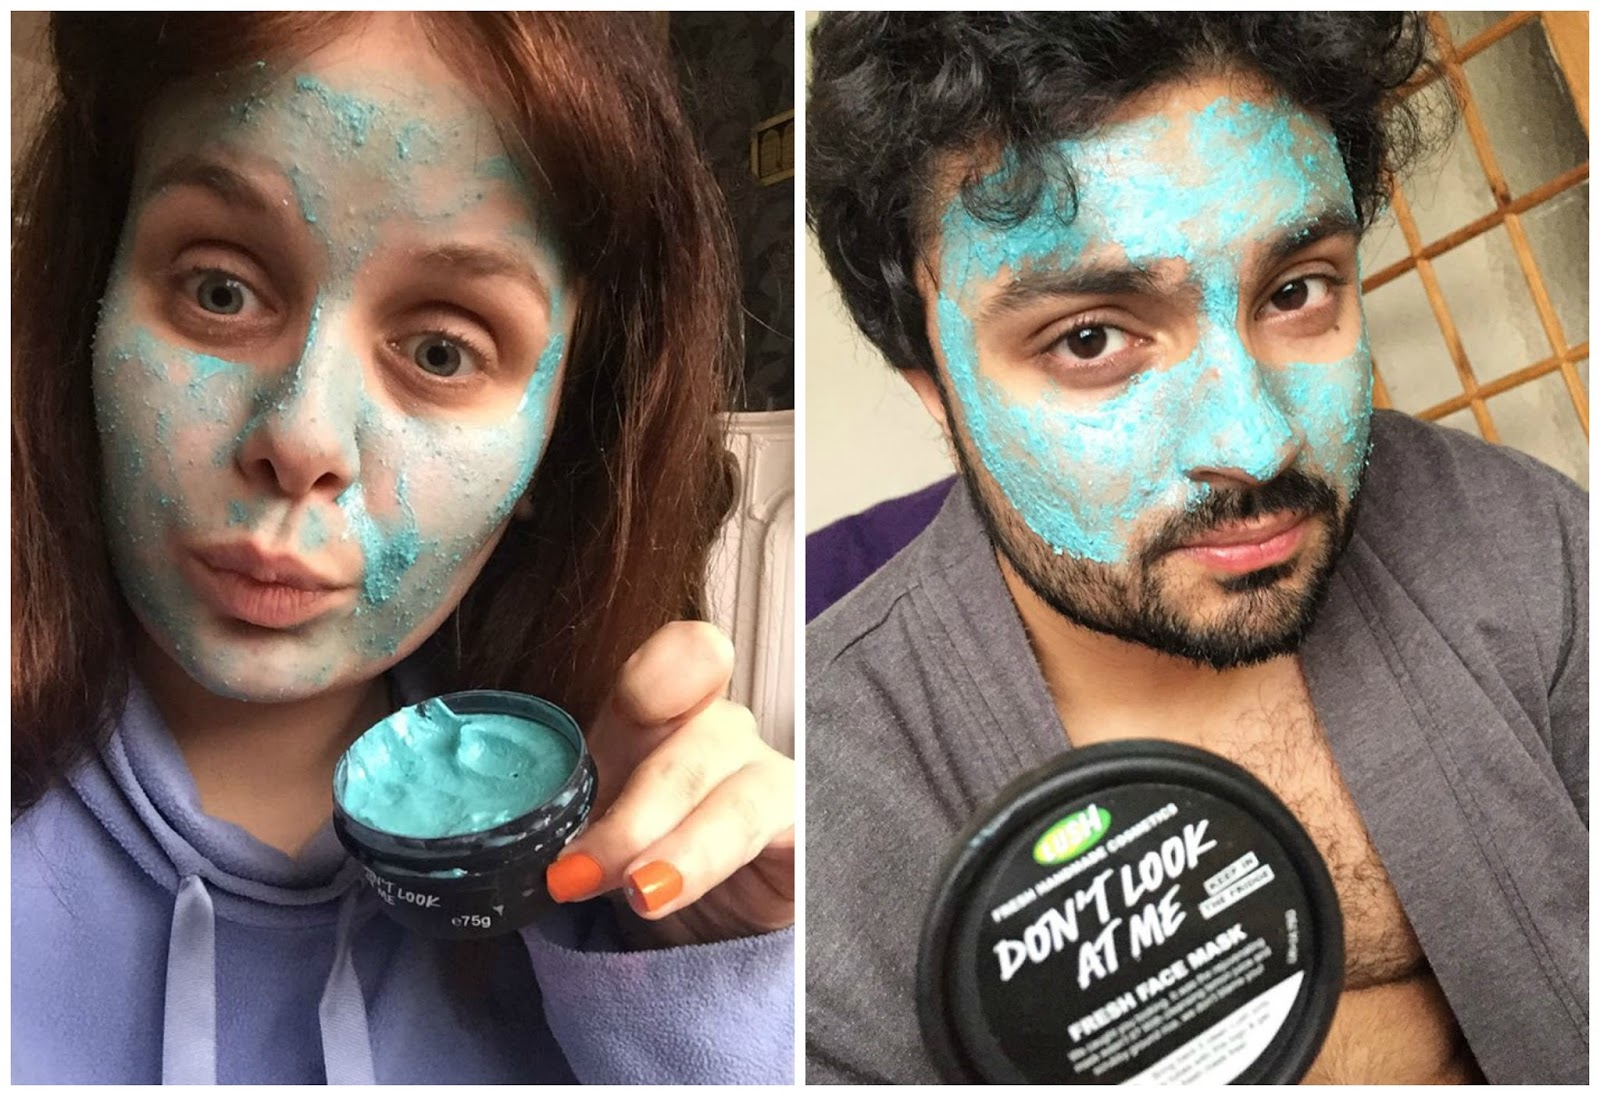 Dont look at me lush face mask review - When I Talked To The Lady At Lush She Said This Was Her Favourite Face Mask And That This Pot Has Seven Uses